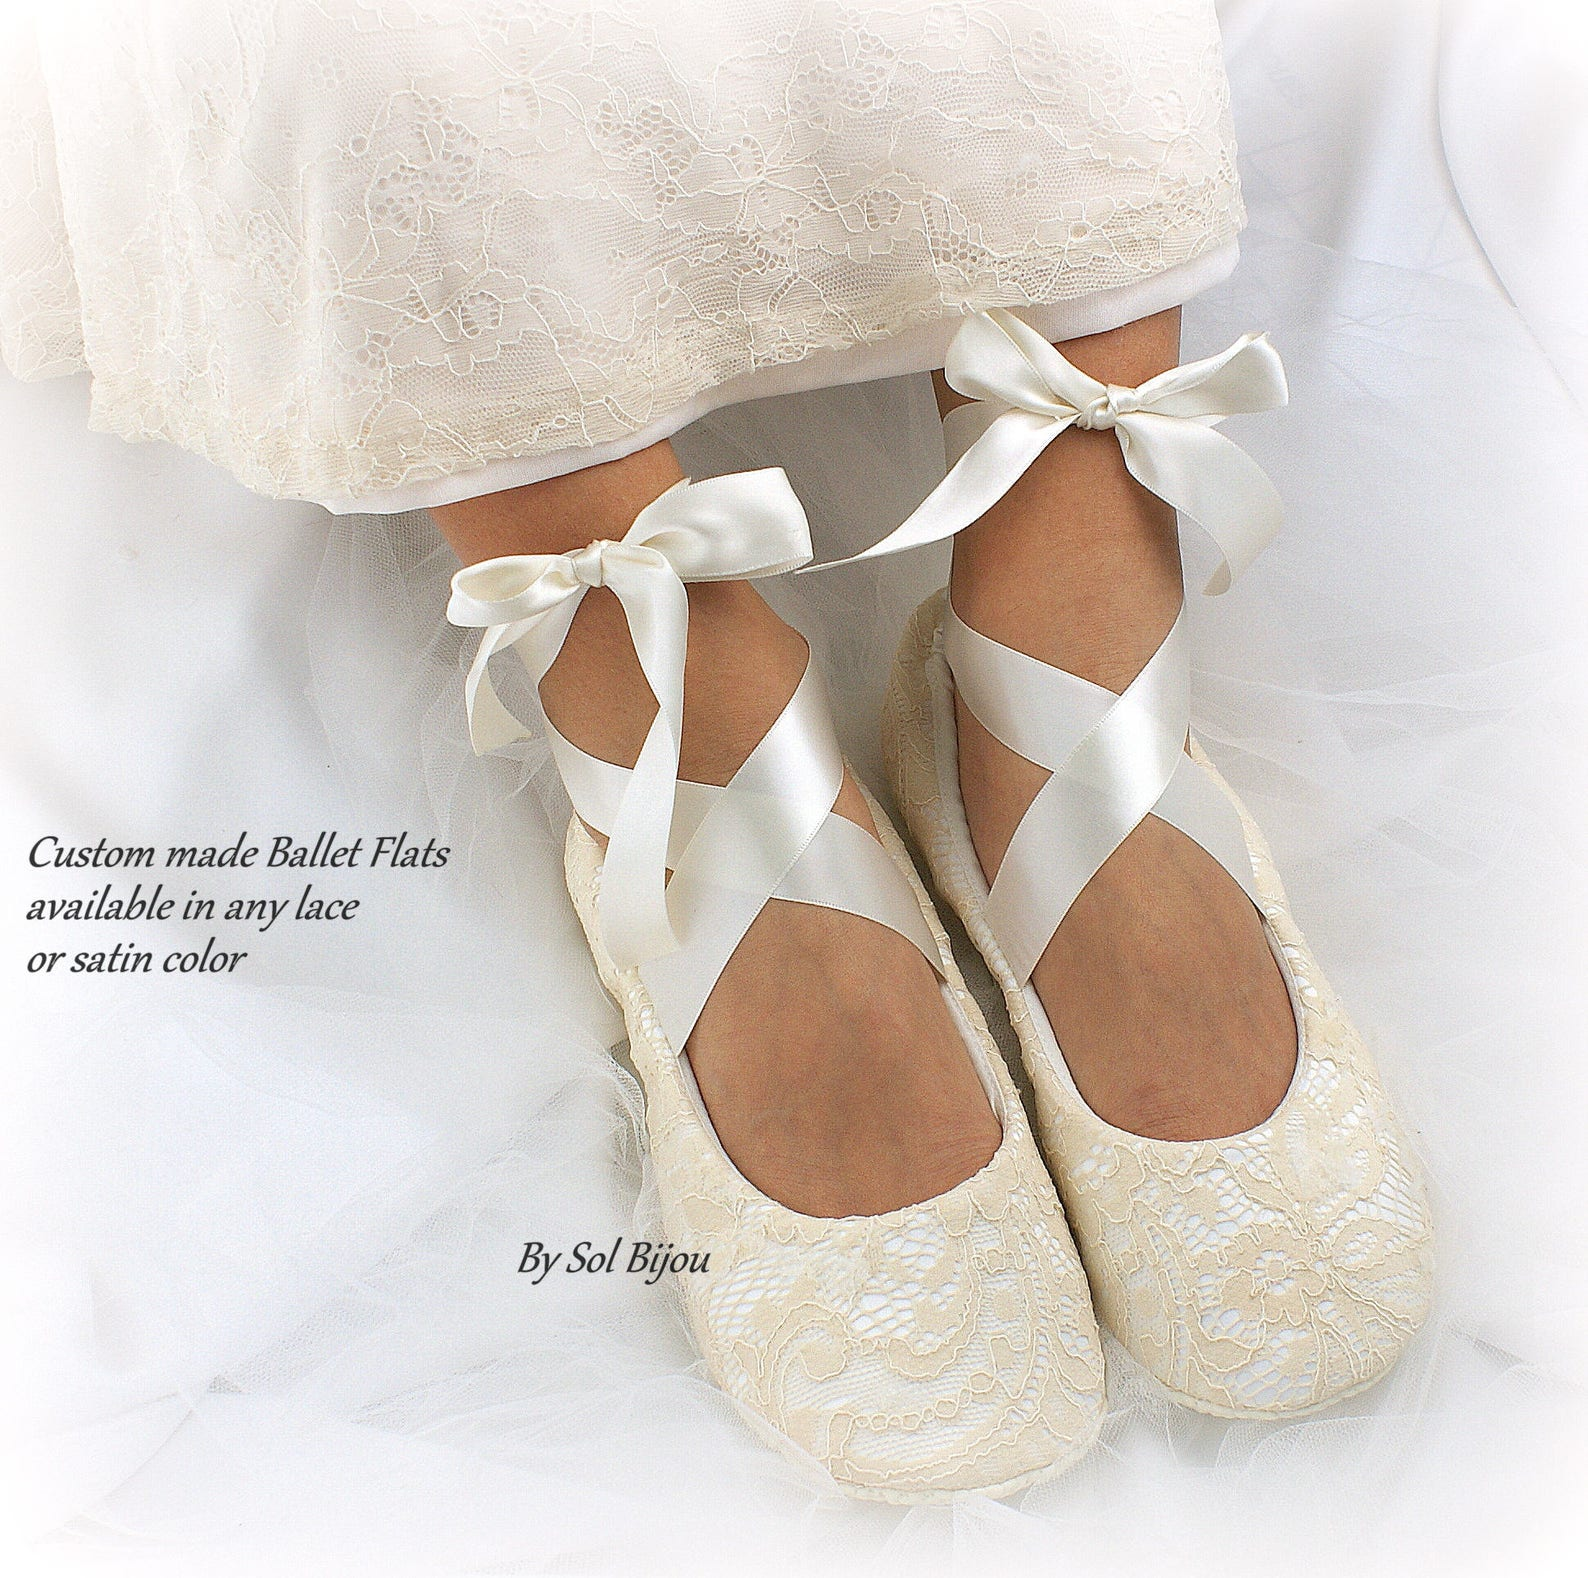 wedding ballet flats shoes white light blue lace ballet slippers bridal flats something blue flats shoes for brides